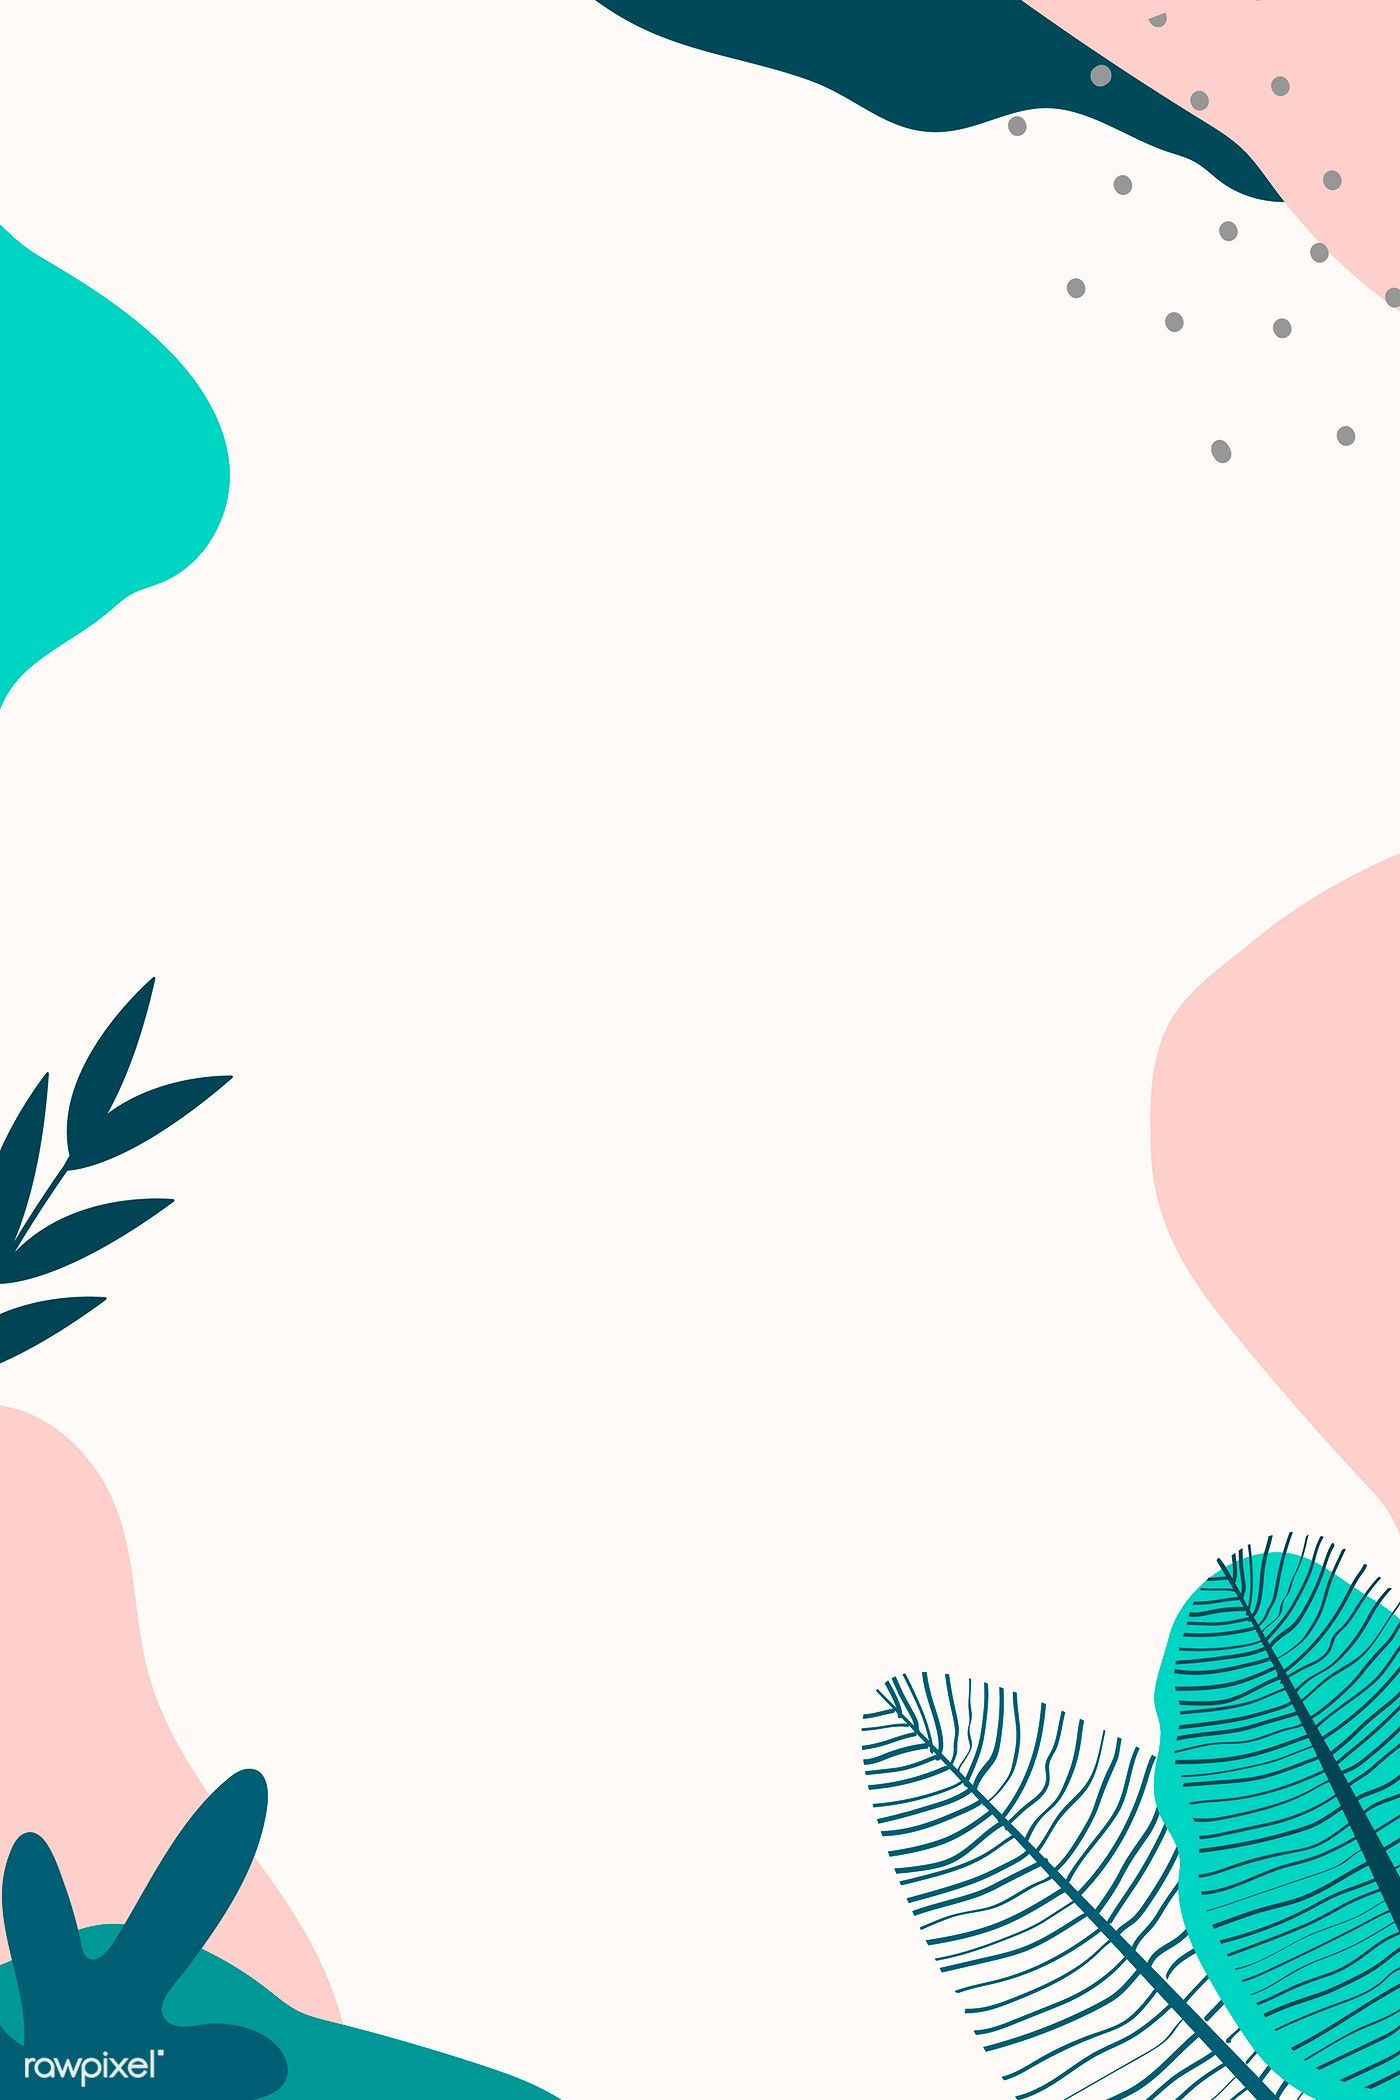 Download premium vector of Beige and green abstract botanical patterned